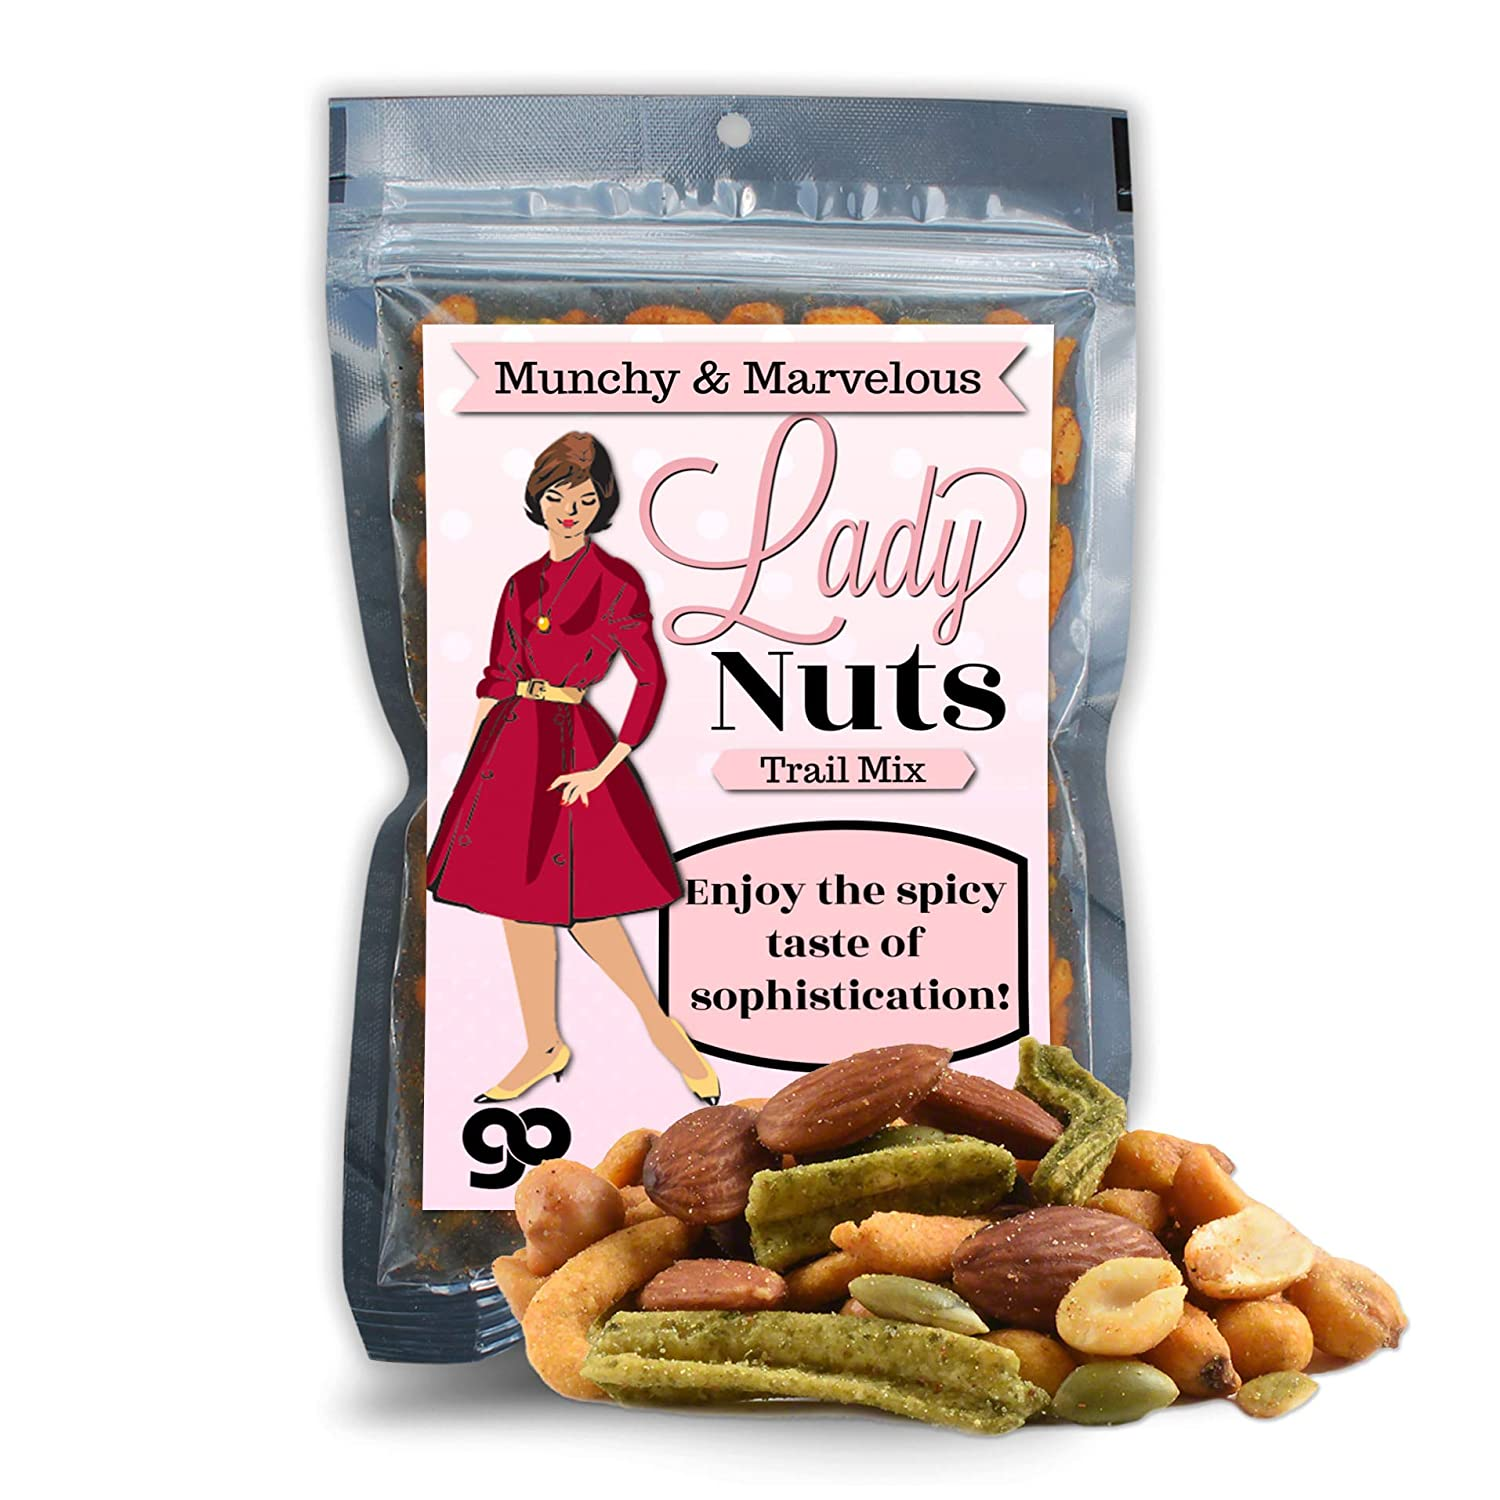 Lady Nuts Spicy Trail Mix - Funny Food Gifts for Men and Women - Premium Trail Mix, Weird Stocking Stuffer, Made in the USA